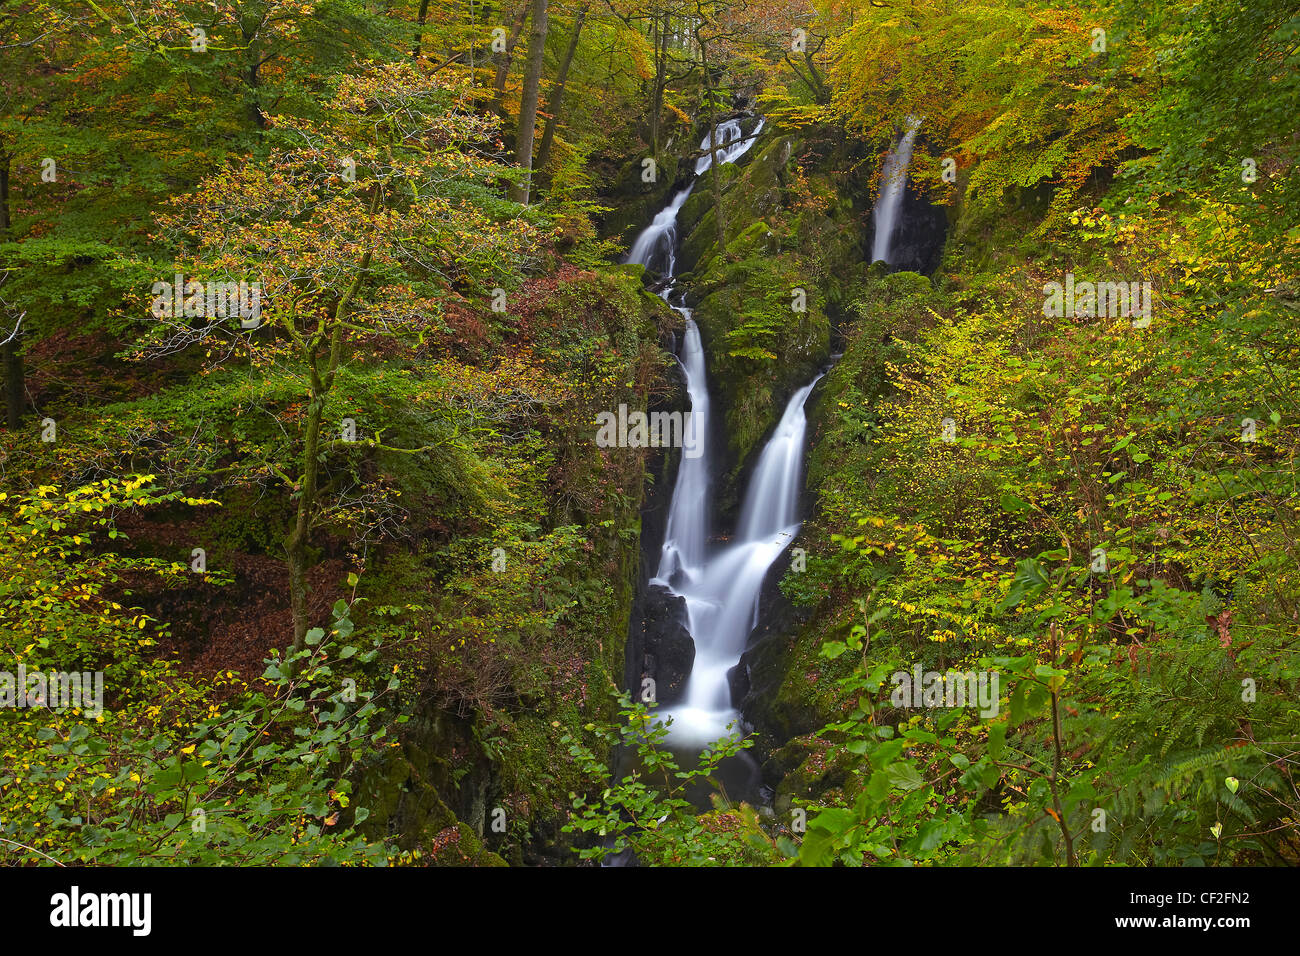 Stock Ghyll Force, a spectacular 70 foot waterfall in autumn. - Stock Image